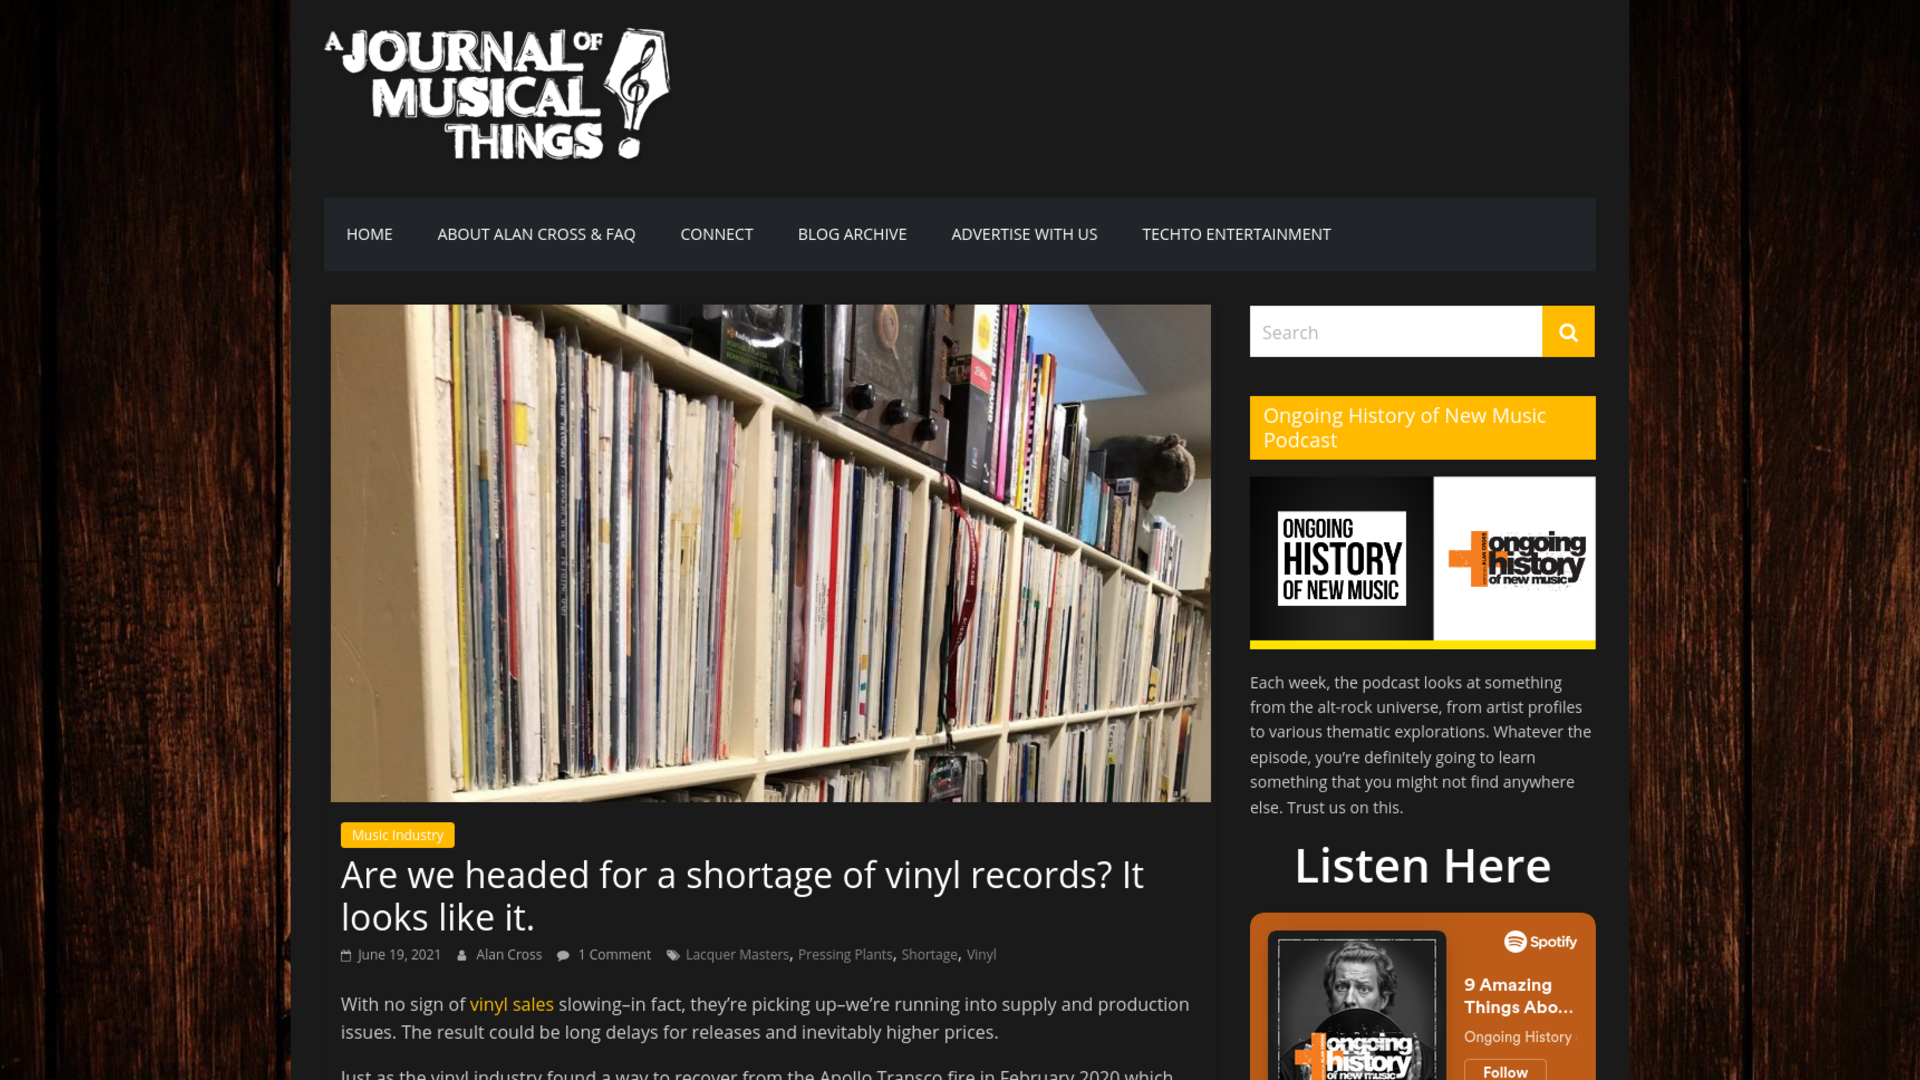 Fairness Rocks News Are we headed for a shortage of vinyl records? It looks like it.